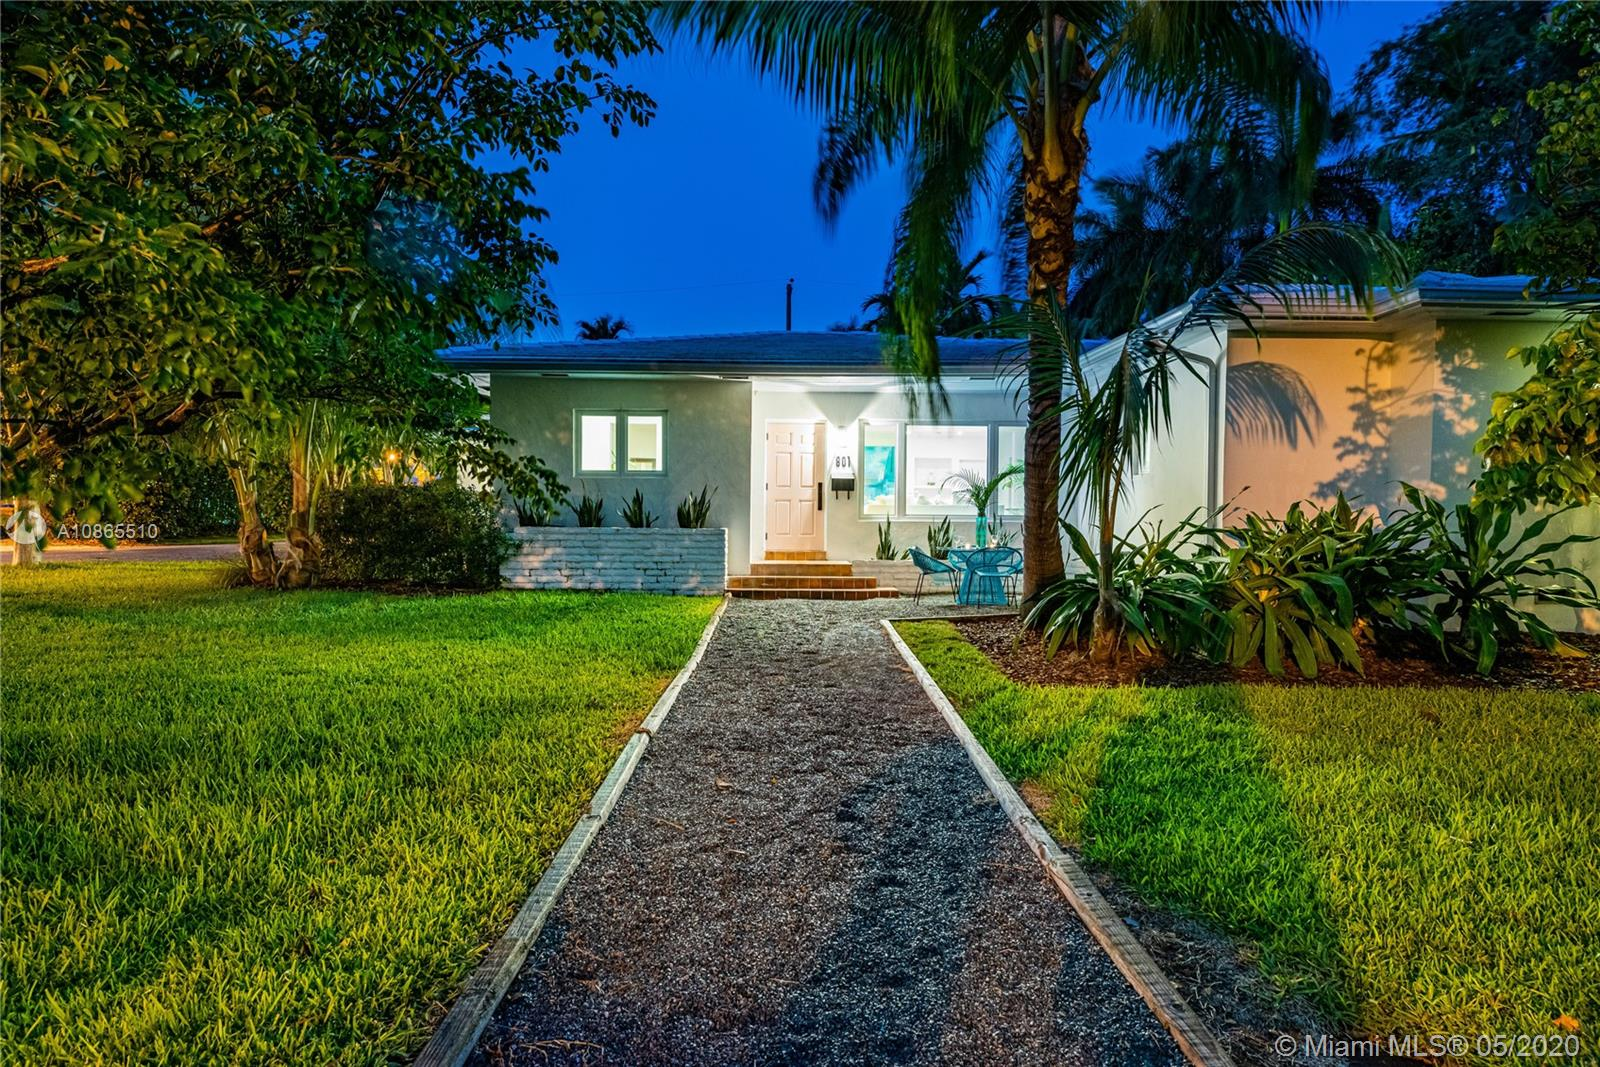 801 NE 71st St, Miami, Florida 33138, 4 Bedrooms Bedrooms, ,4 BathroomsBathrooms,Residential,For Sale,801 NE 71st St,A10865510